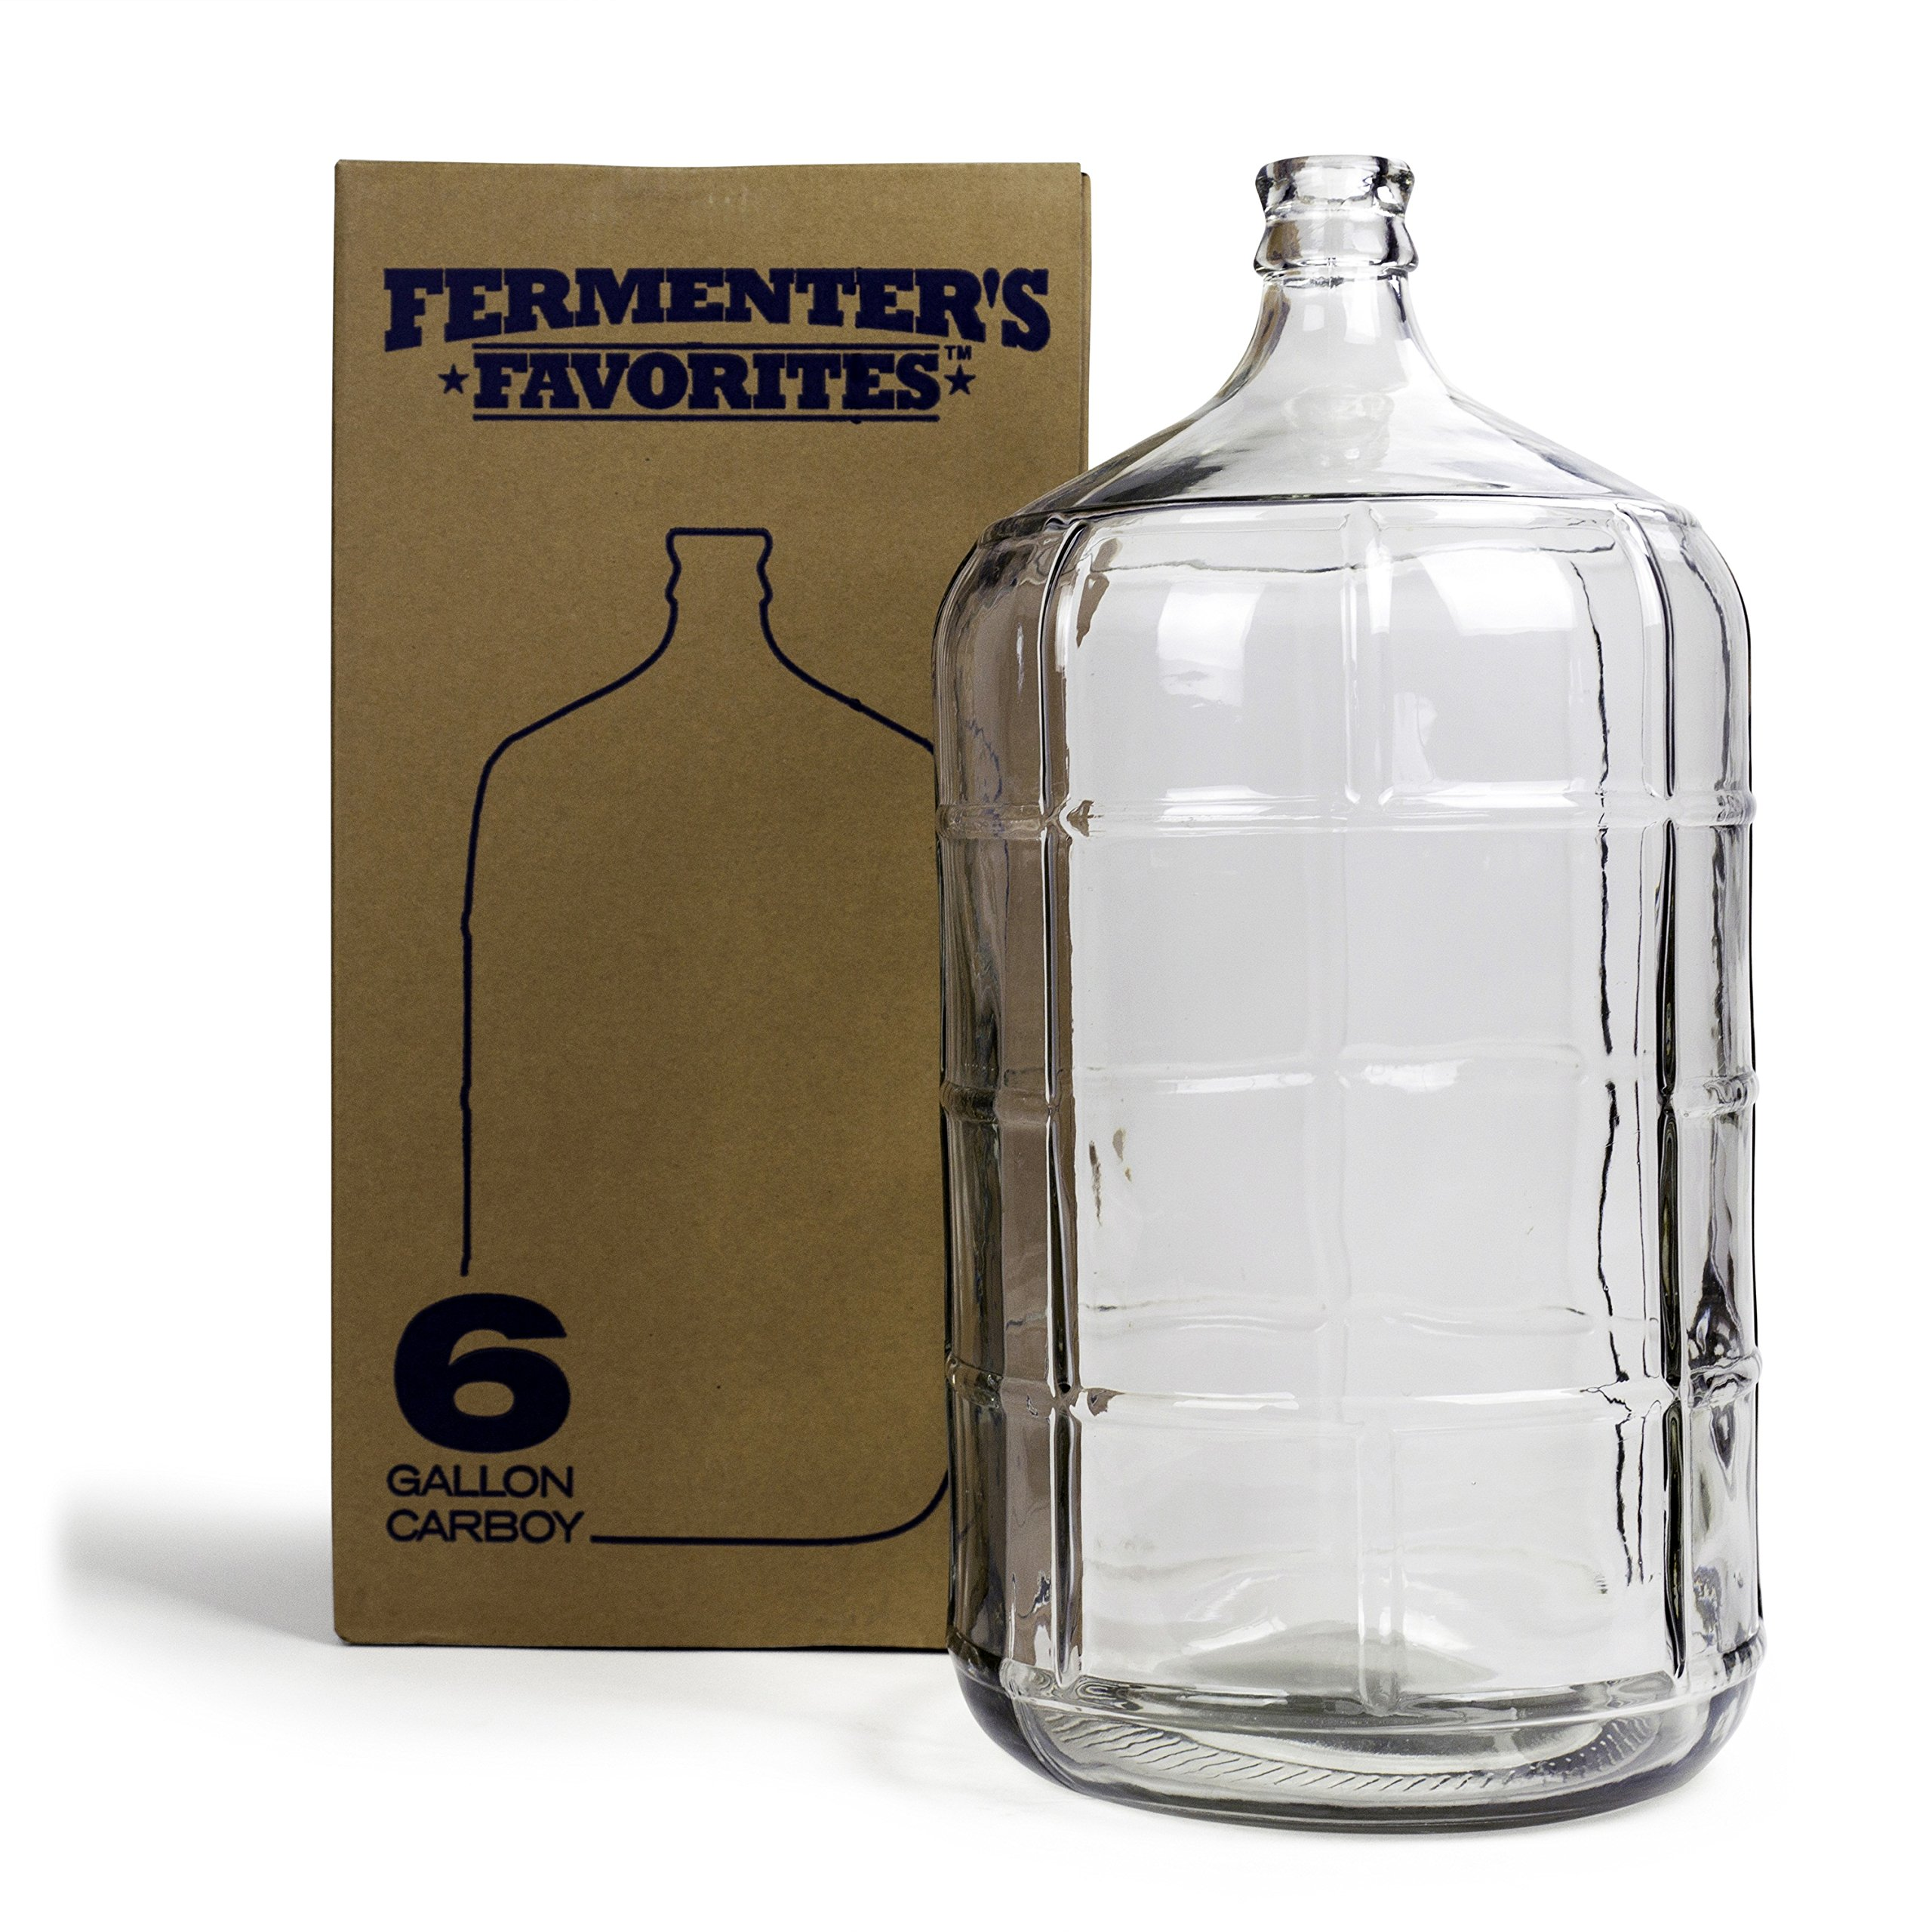 Northern Brewer - Fermenter's Favorites 6 Gallons Glass Carboy Fermenter For Fermentation Of Homebrew Beer Brewing, Wine Making, Mead And Hard Cider by Northern Brewer